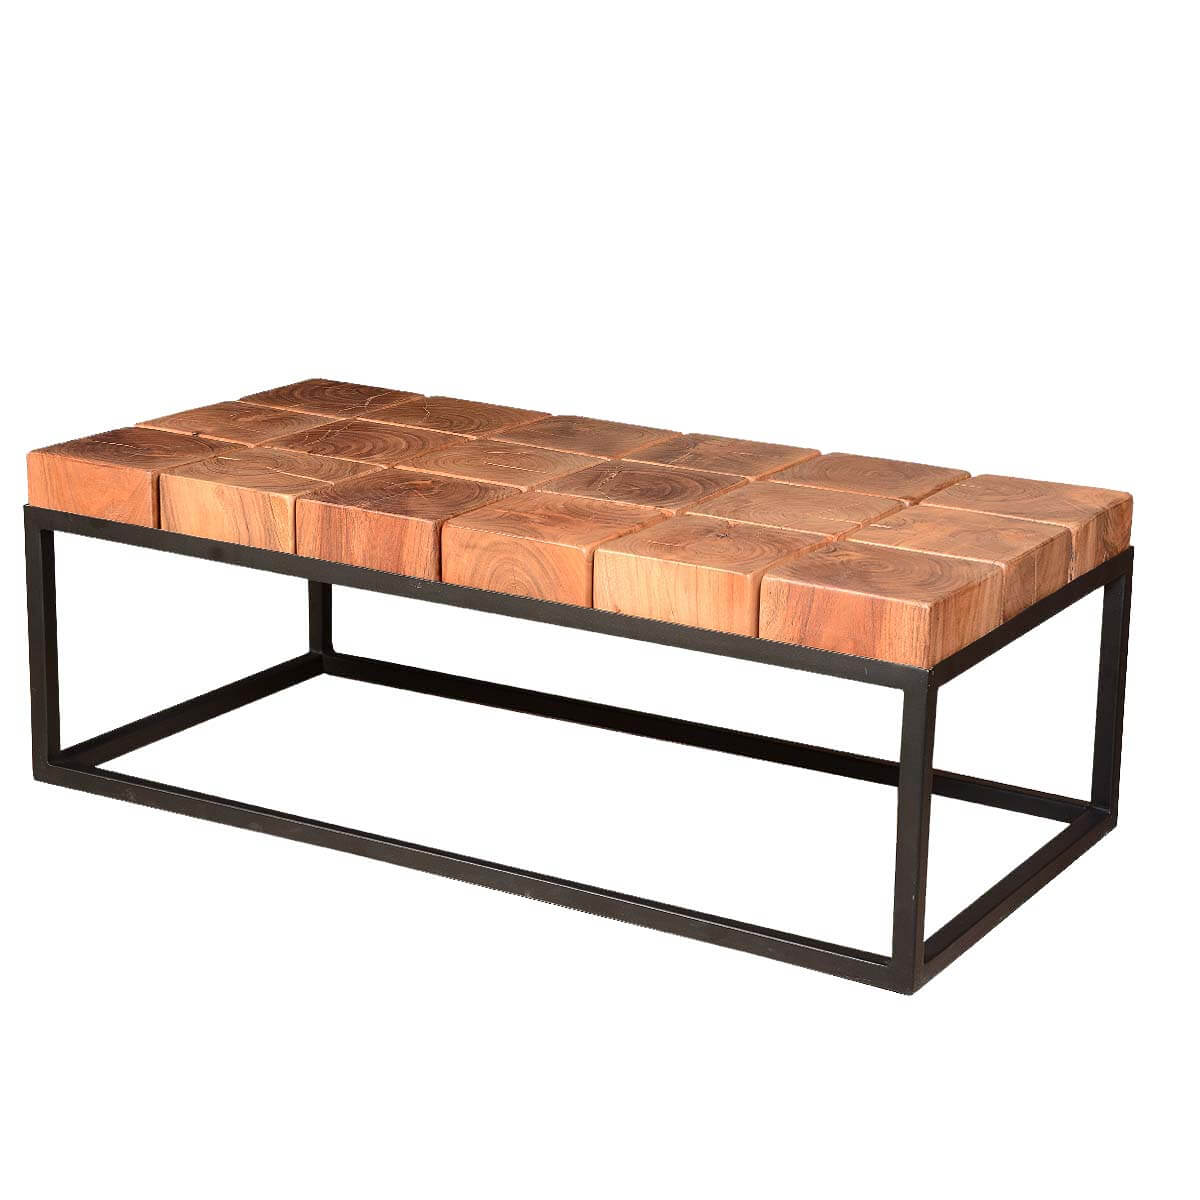 Solid Acacia Wood Block Contemporary Iron Base Rustic Coffee Table. Acacia Wood Block Contemporary Iron Base Rustic Coffee Table